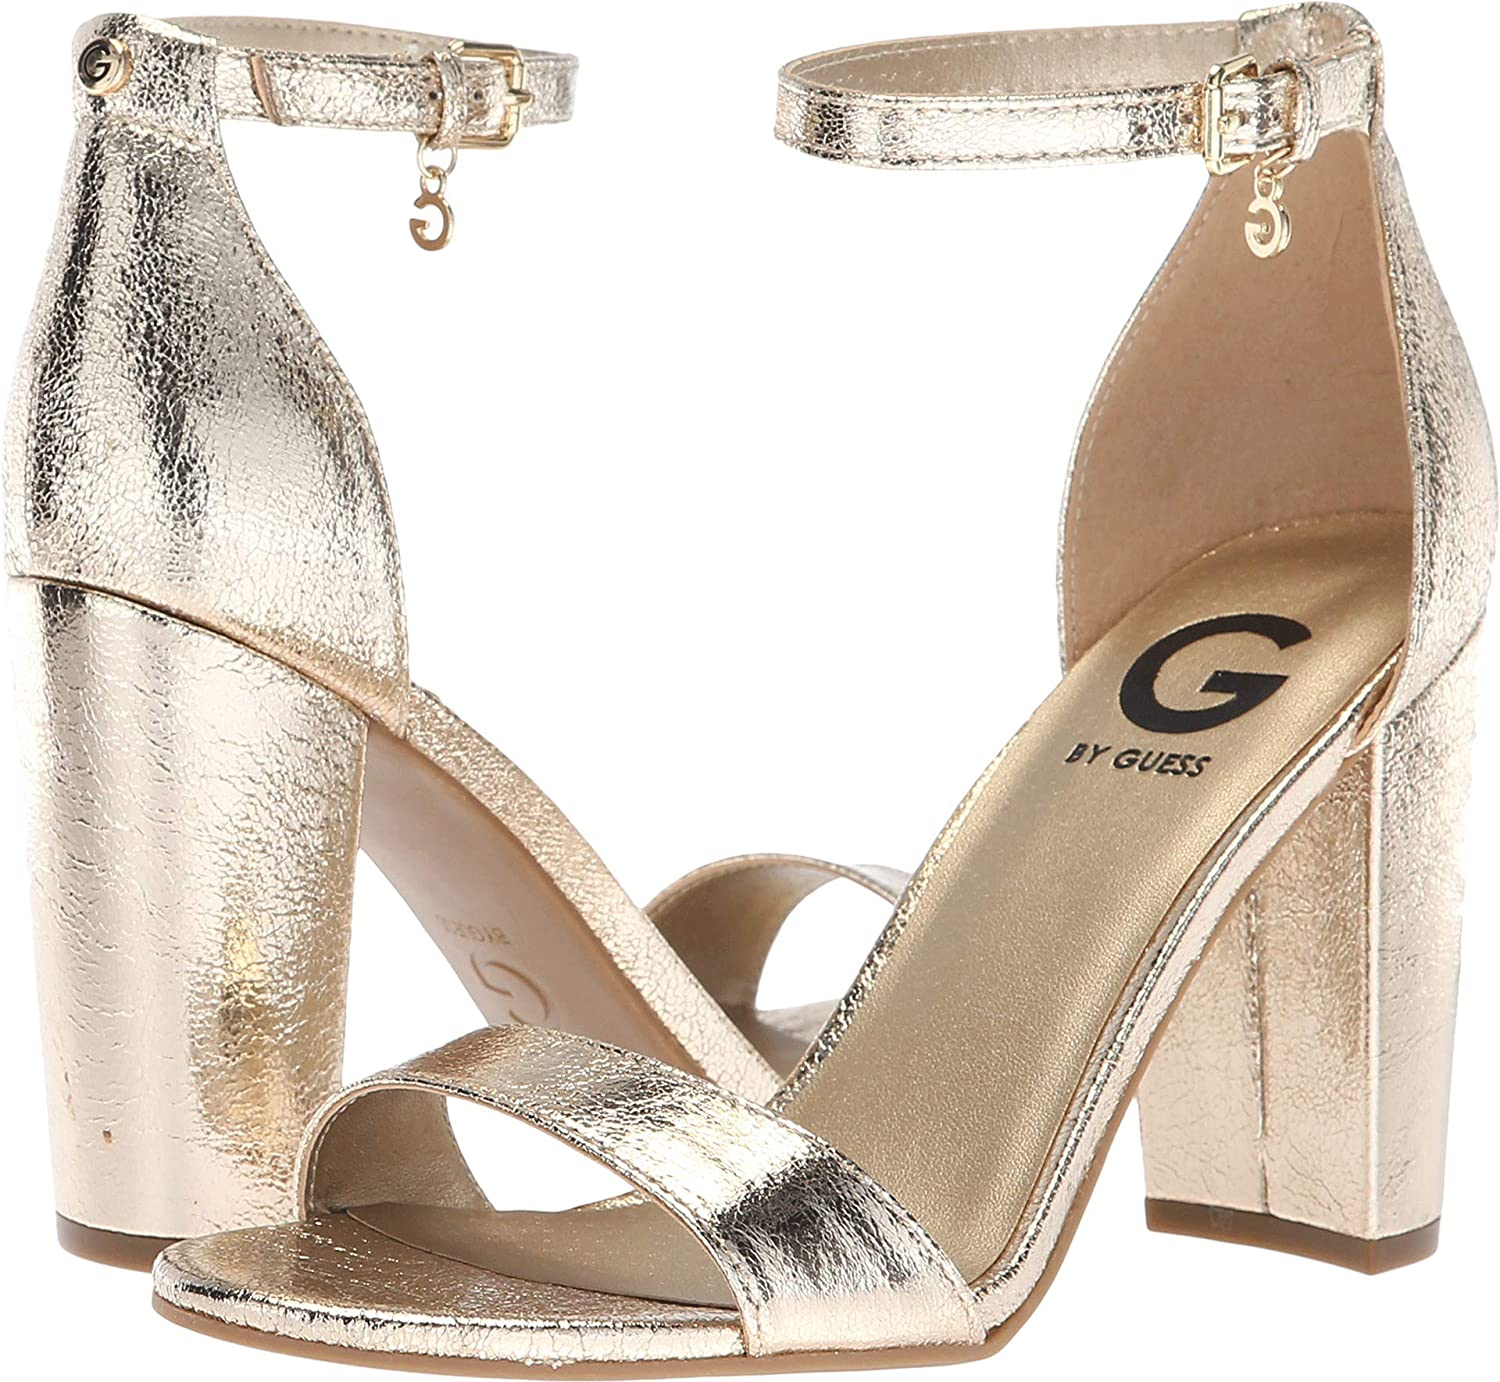 168278be754 G by GUESS Womens Shantel 3 Faux Leather Dress Sandals Gold 10 Medium (B,M)